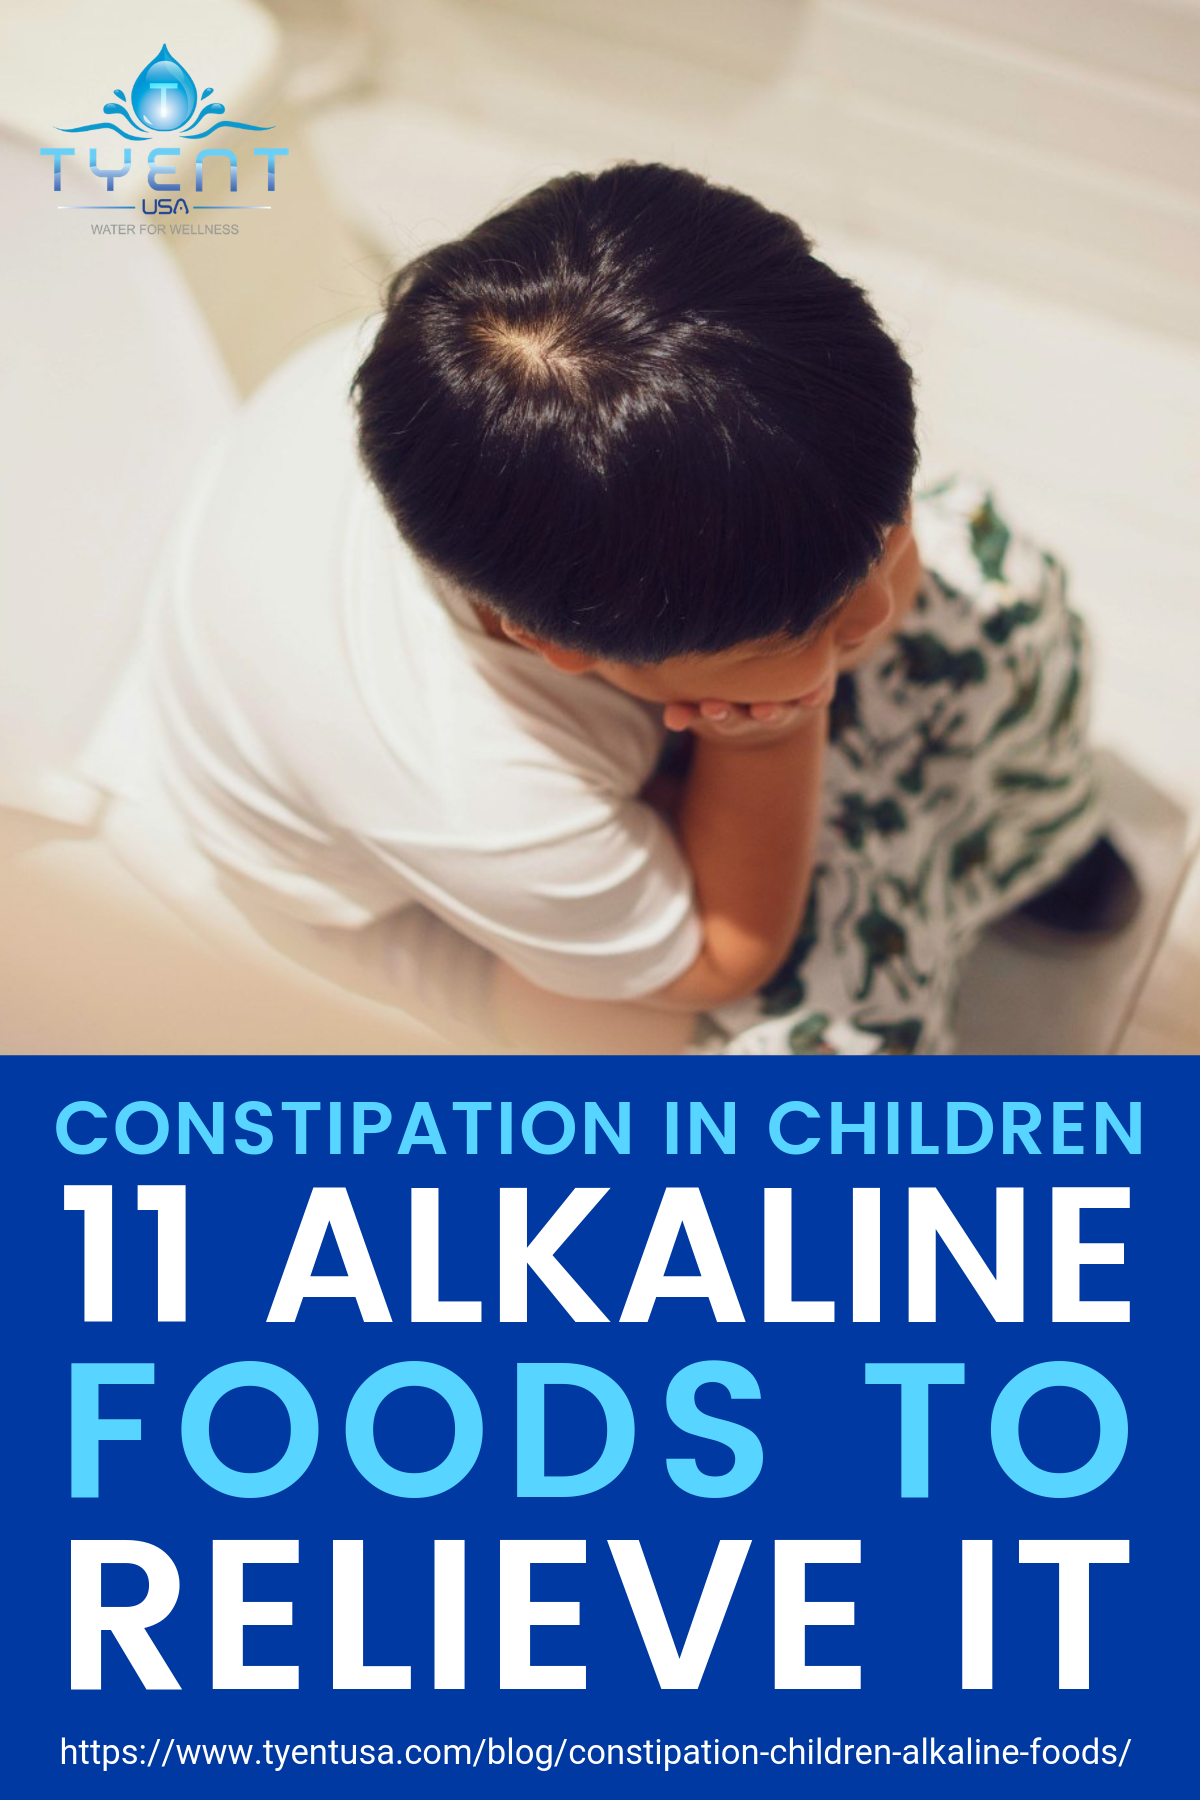 Constipation In Children: 11 Alkaline Foods To Relieve It https://www.tyentusa.com/blog/constipation-children-alkaline-foods/